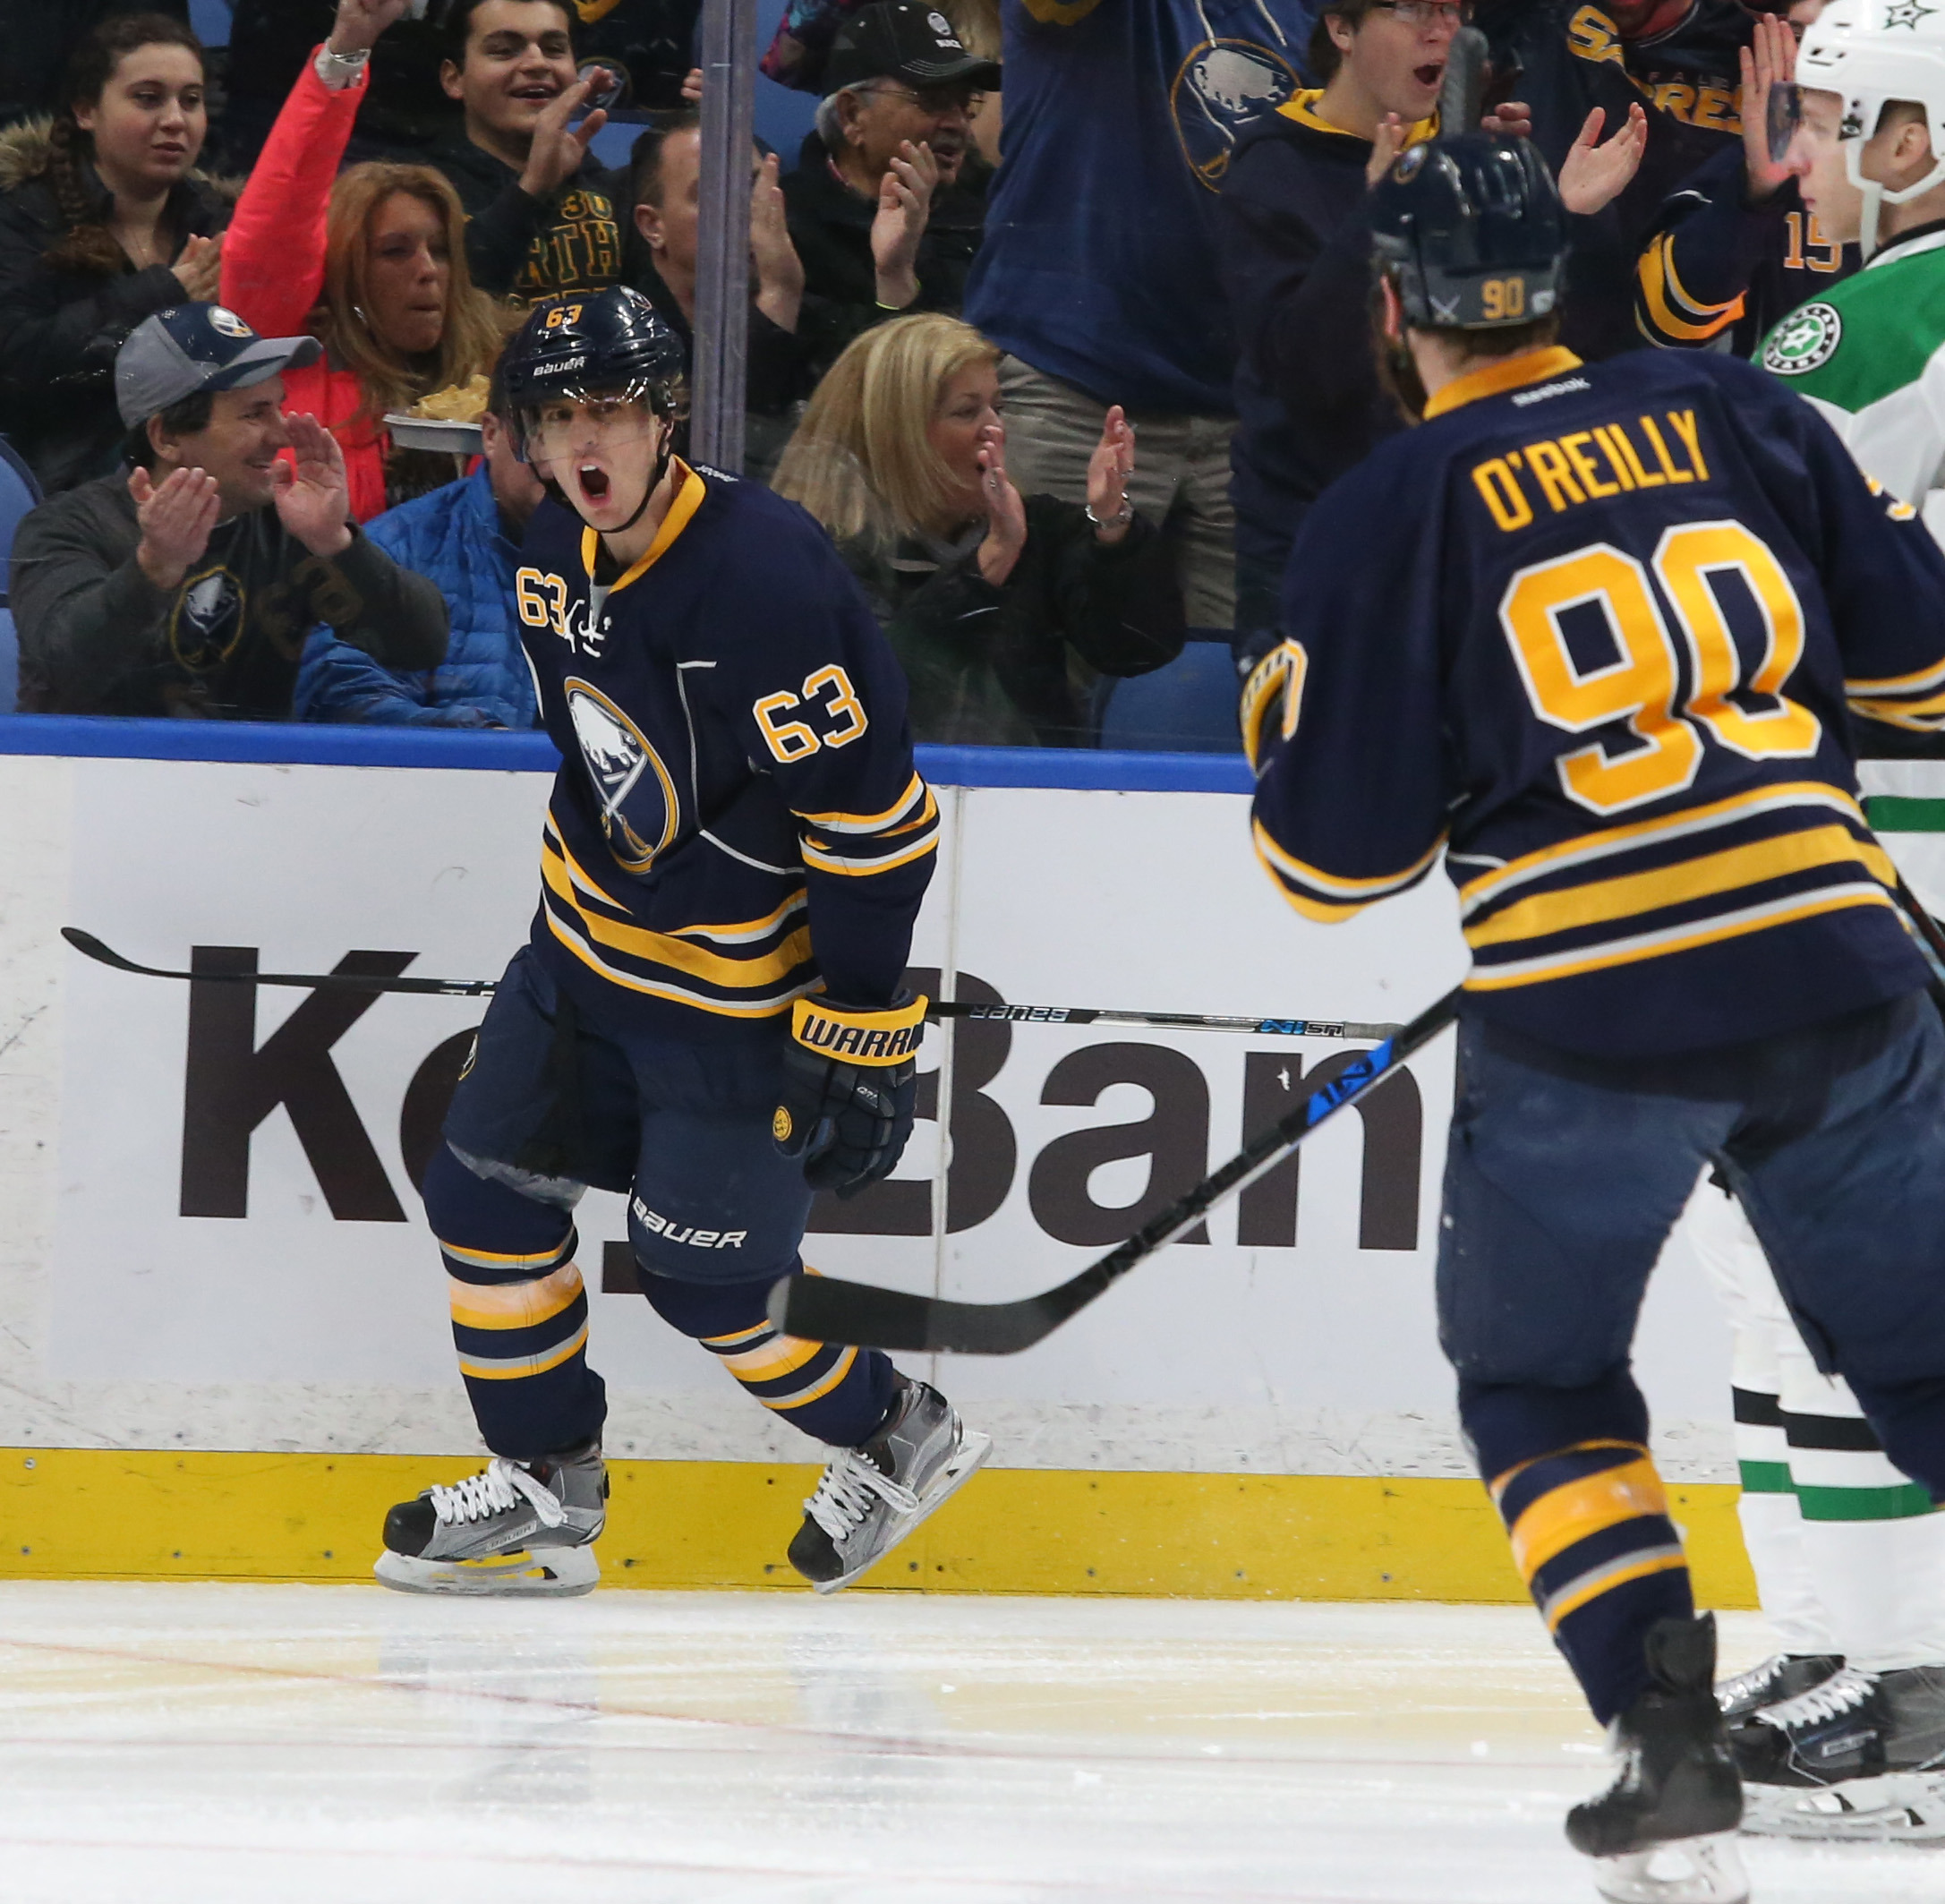 Tyler Ennis expects to be back in the lineup on Friday against Detroit. (James P. McCoy/Buffalo News)